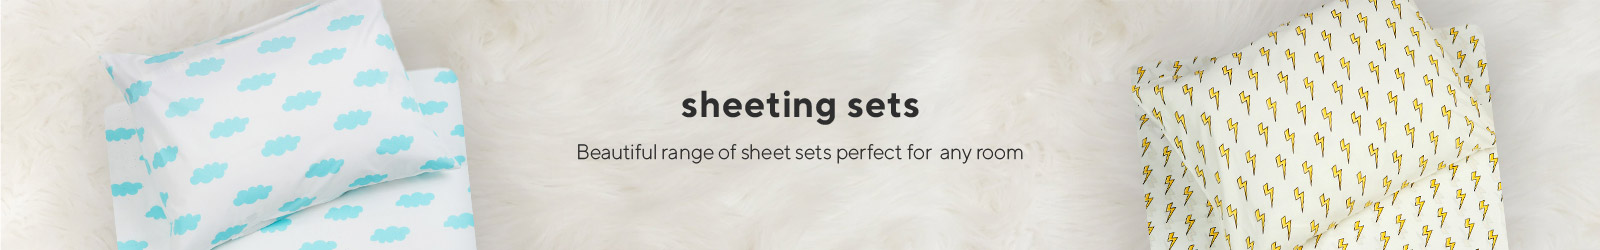 sheeting sets